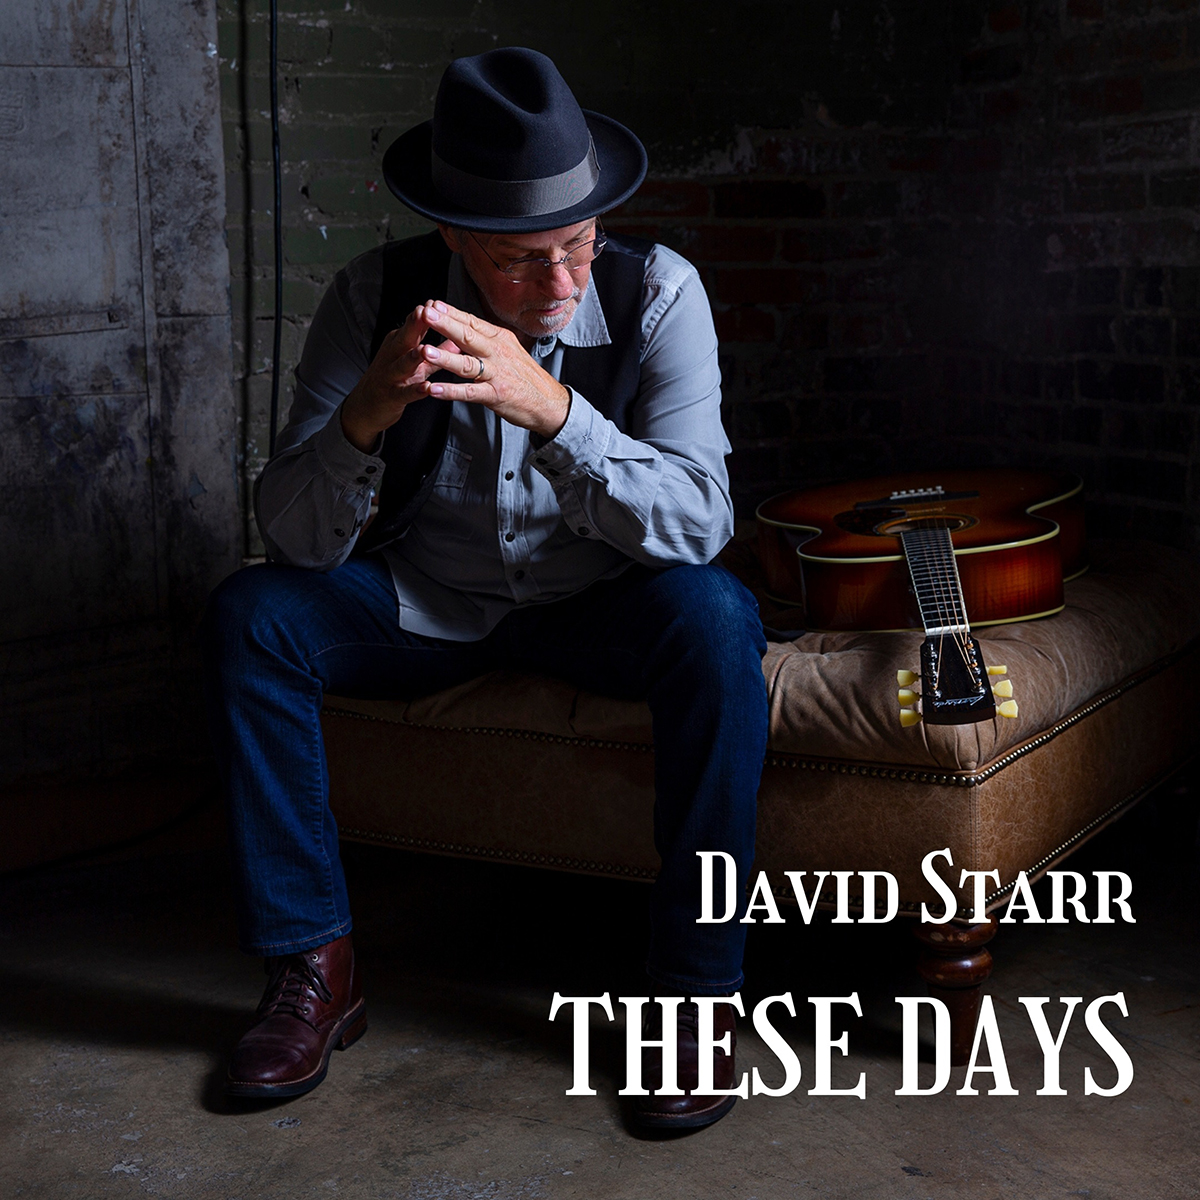 David Starr | These Days | Photo by Jeff Fasano